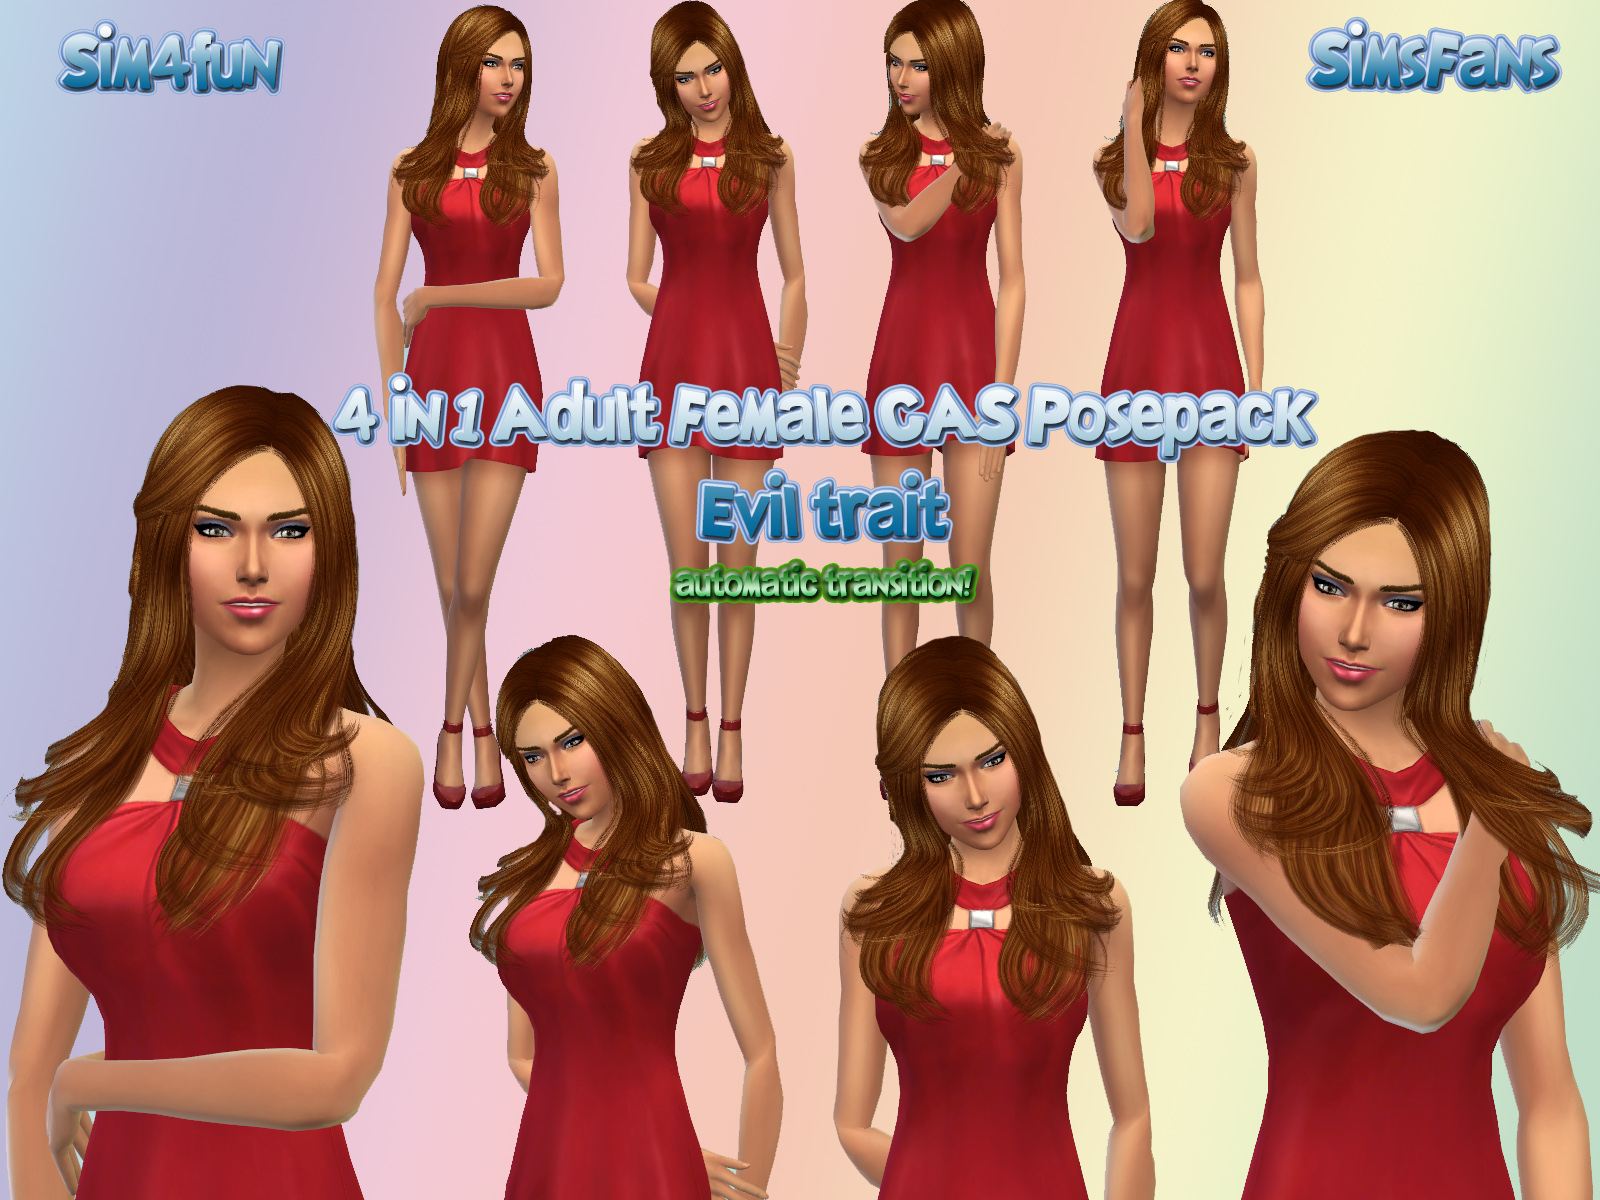 Mod The Sims - 4 in 1 Adult Female CAS Posepack - Evil Trait